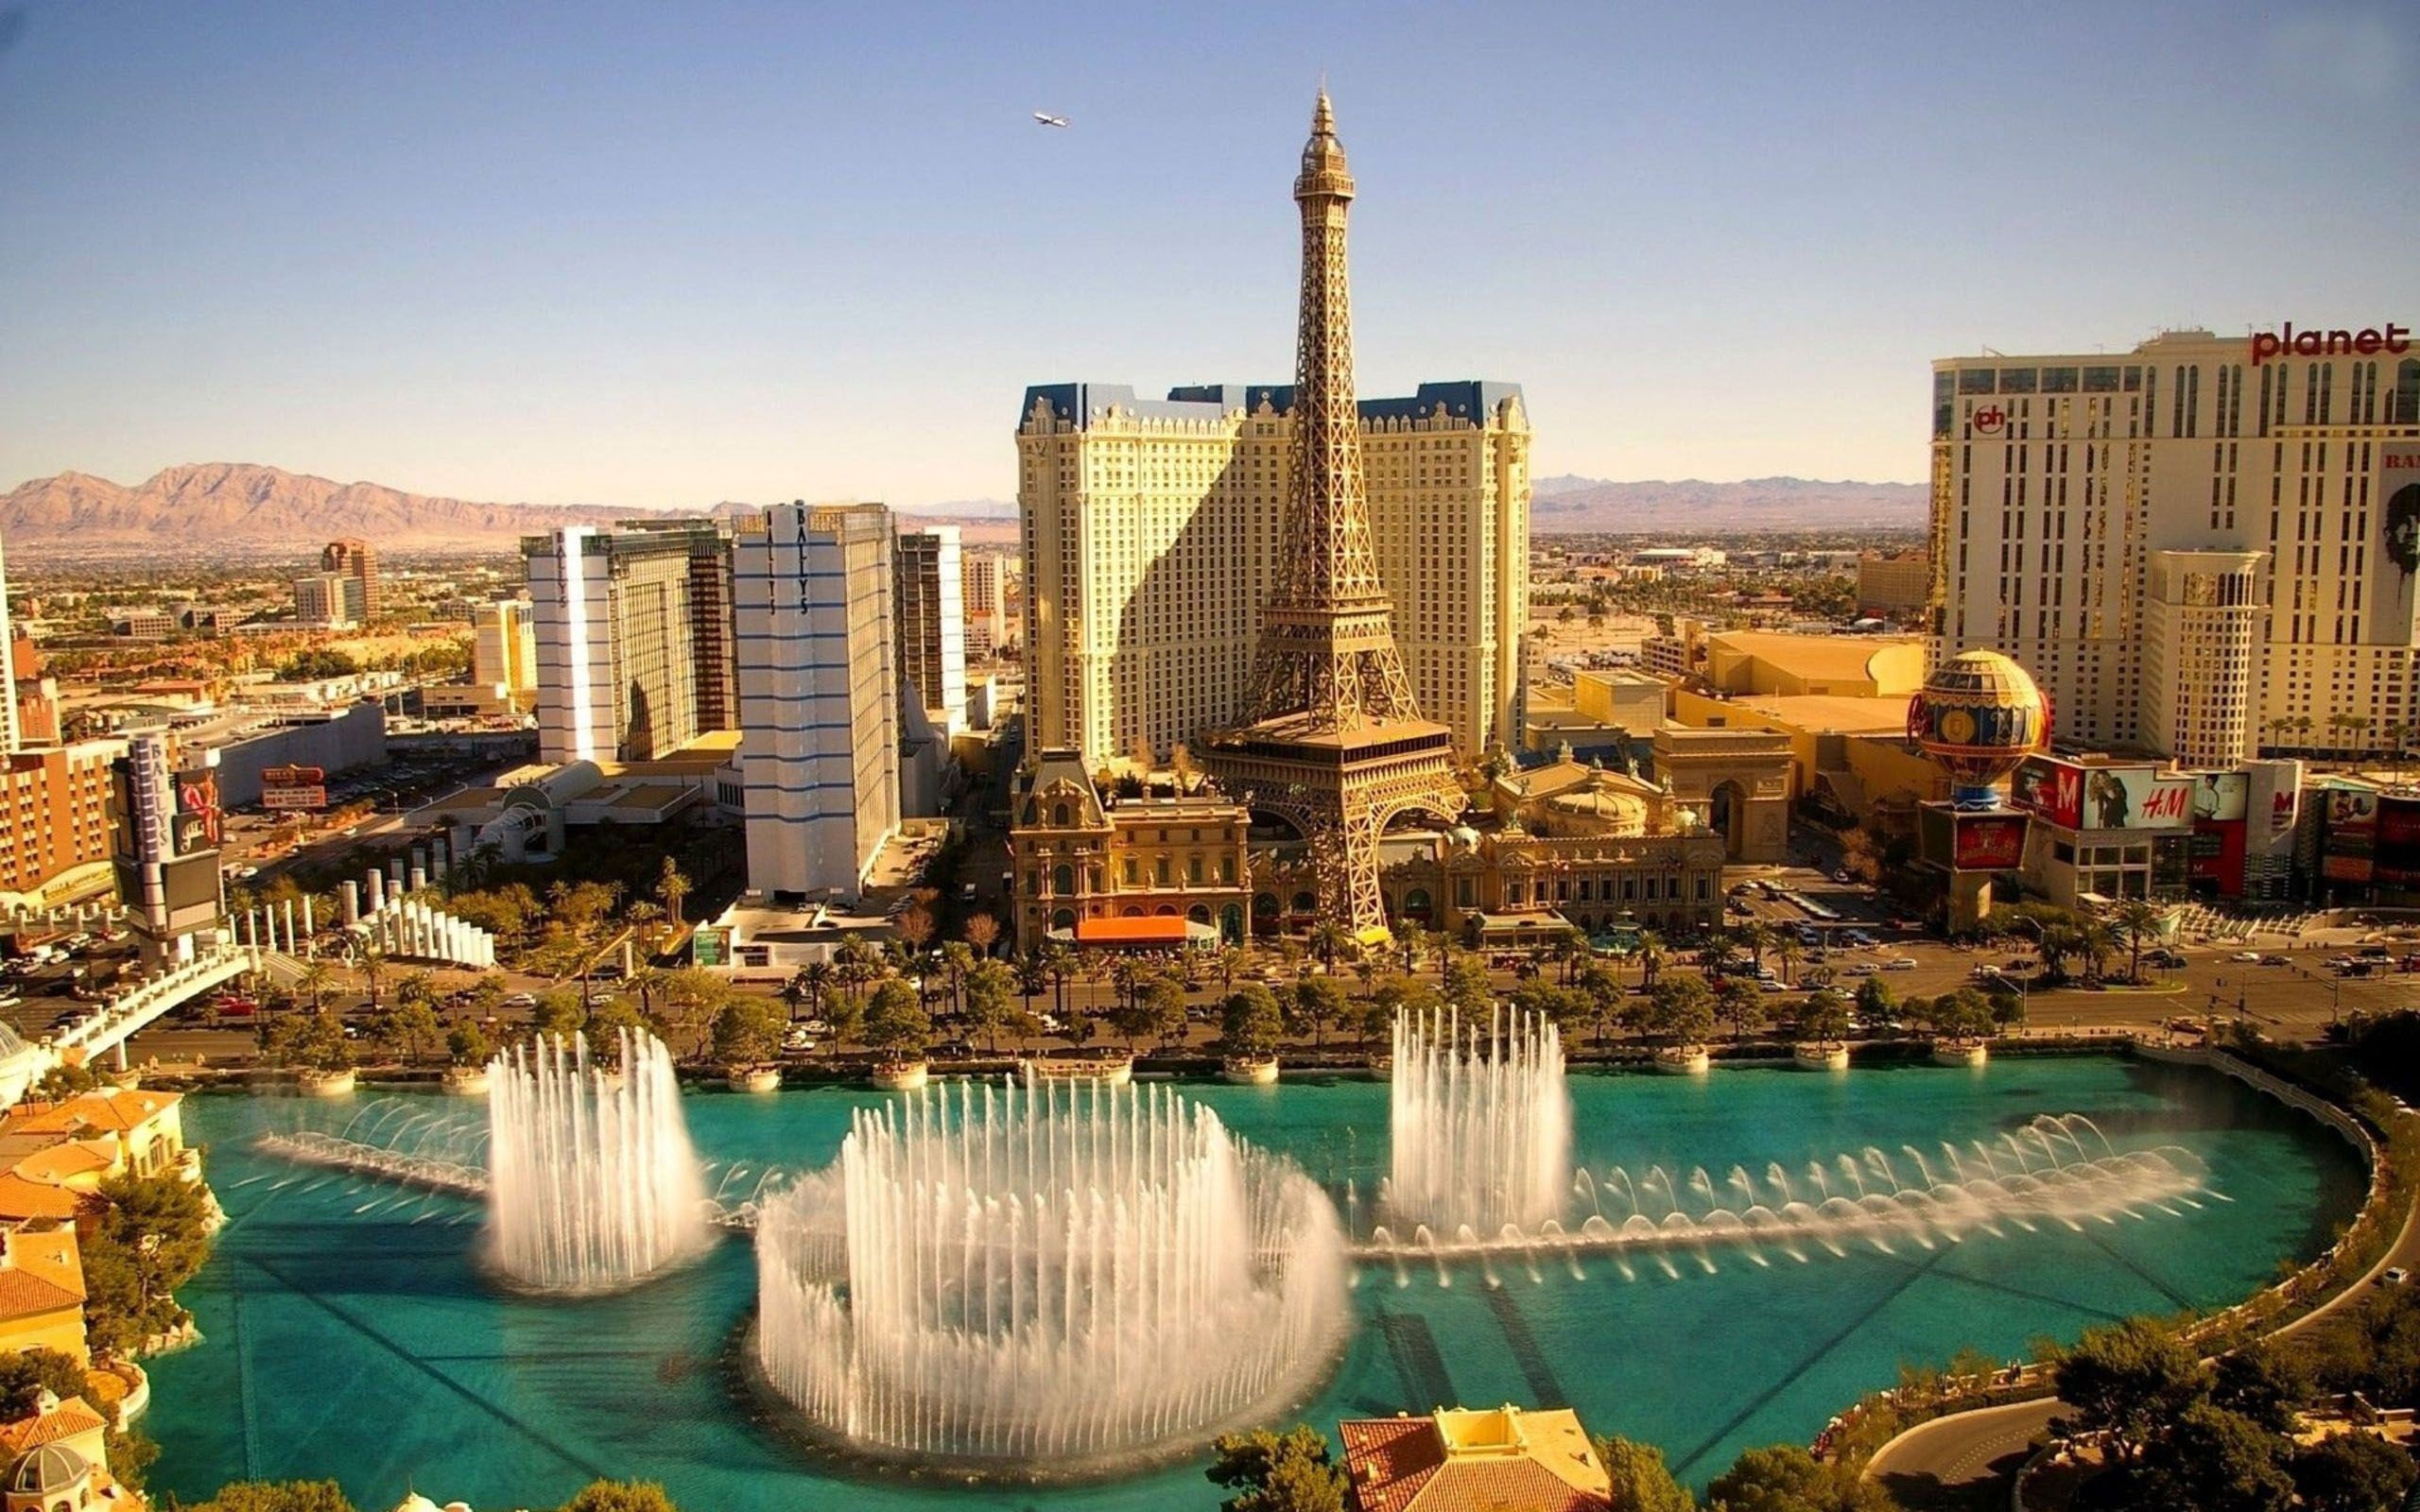 Las vegas fountains hd world 4k wallpapers images backgrounds photos and pictures - Las vegas wallpaper 4k ...